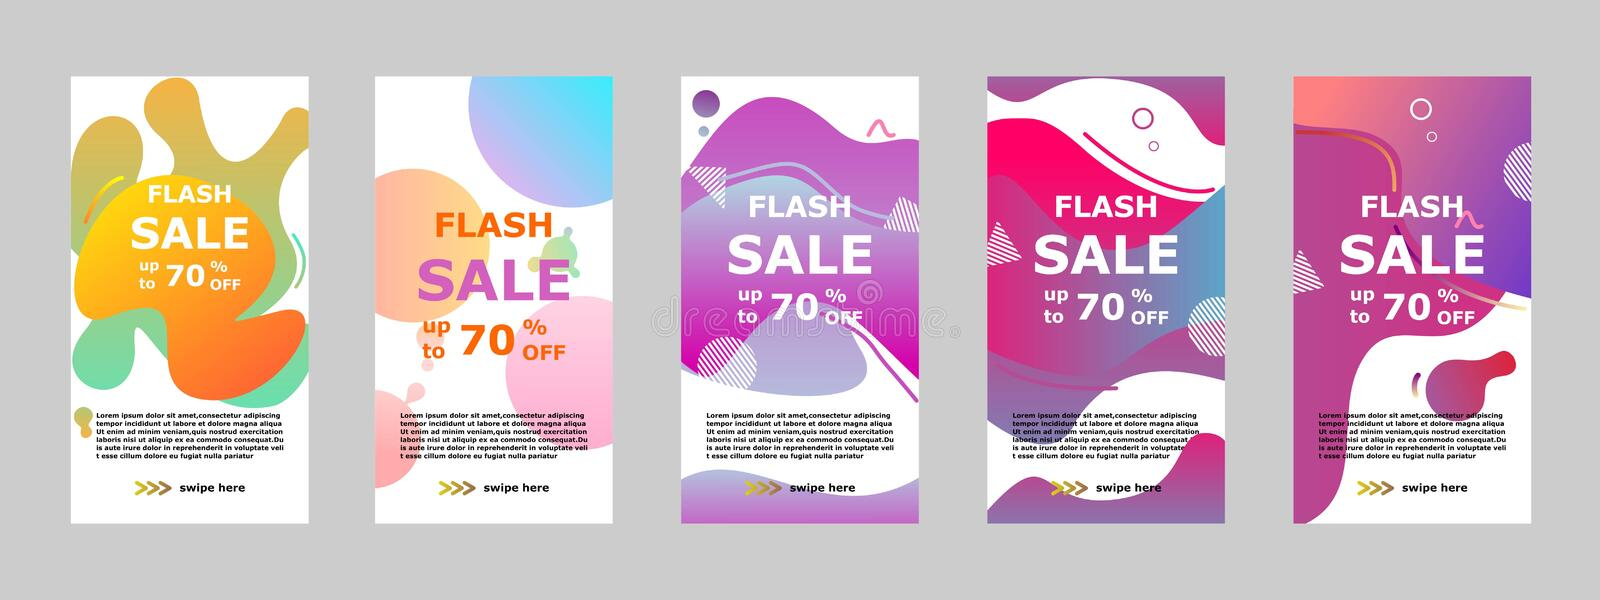 Flash sale banner mobile app and instagram stock photo